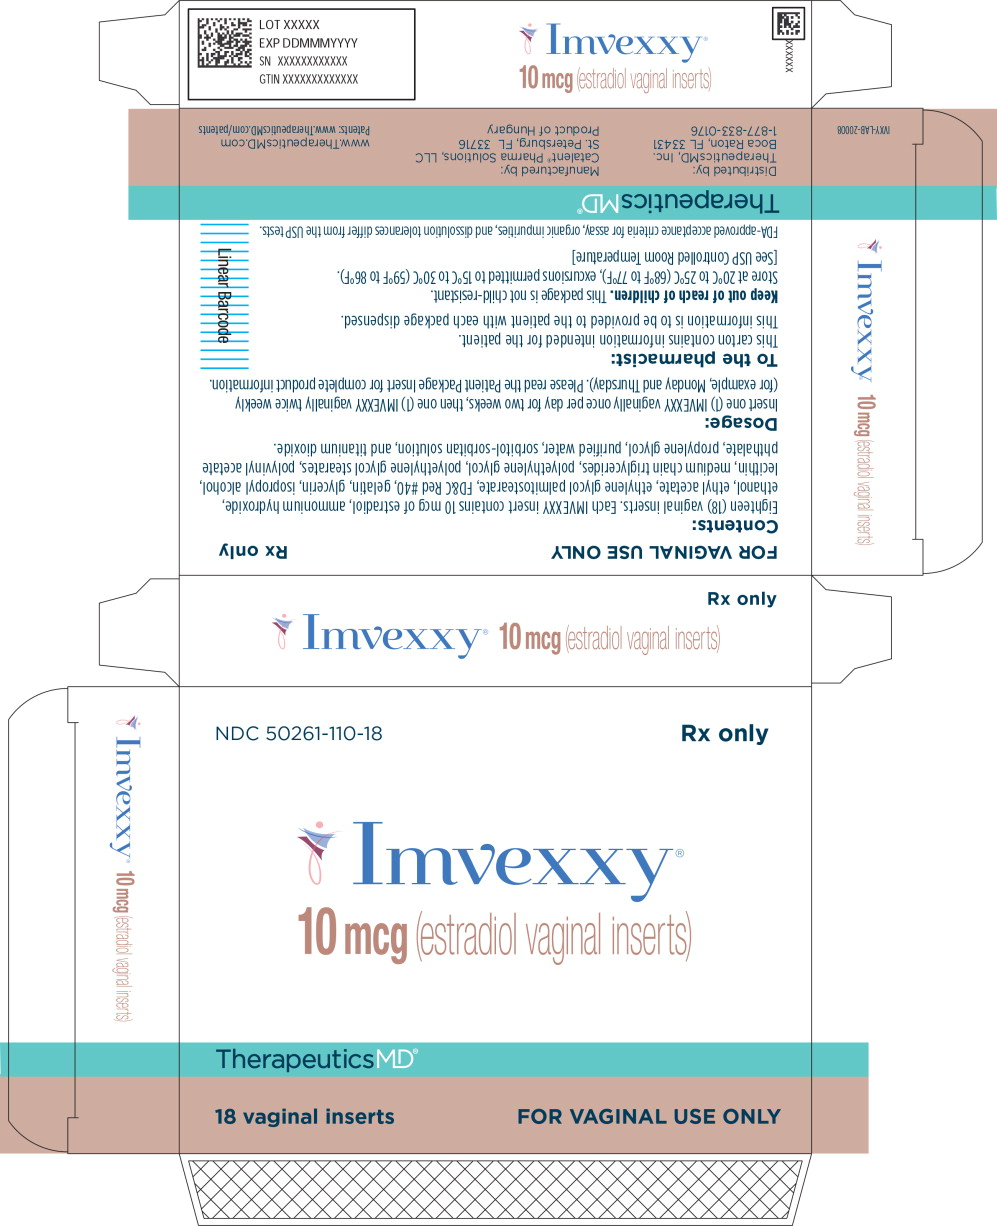 Principal Display Panel - Imvexxy 10 mcg 18 Count Carton Label